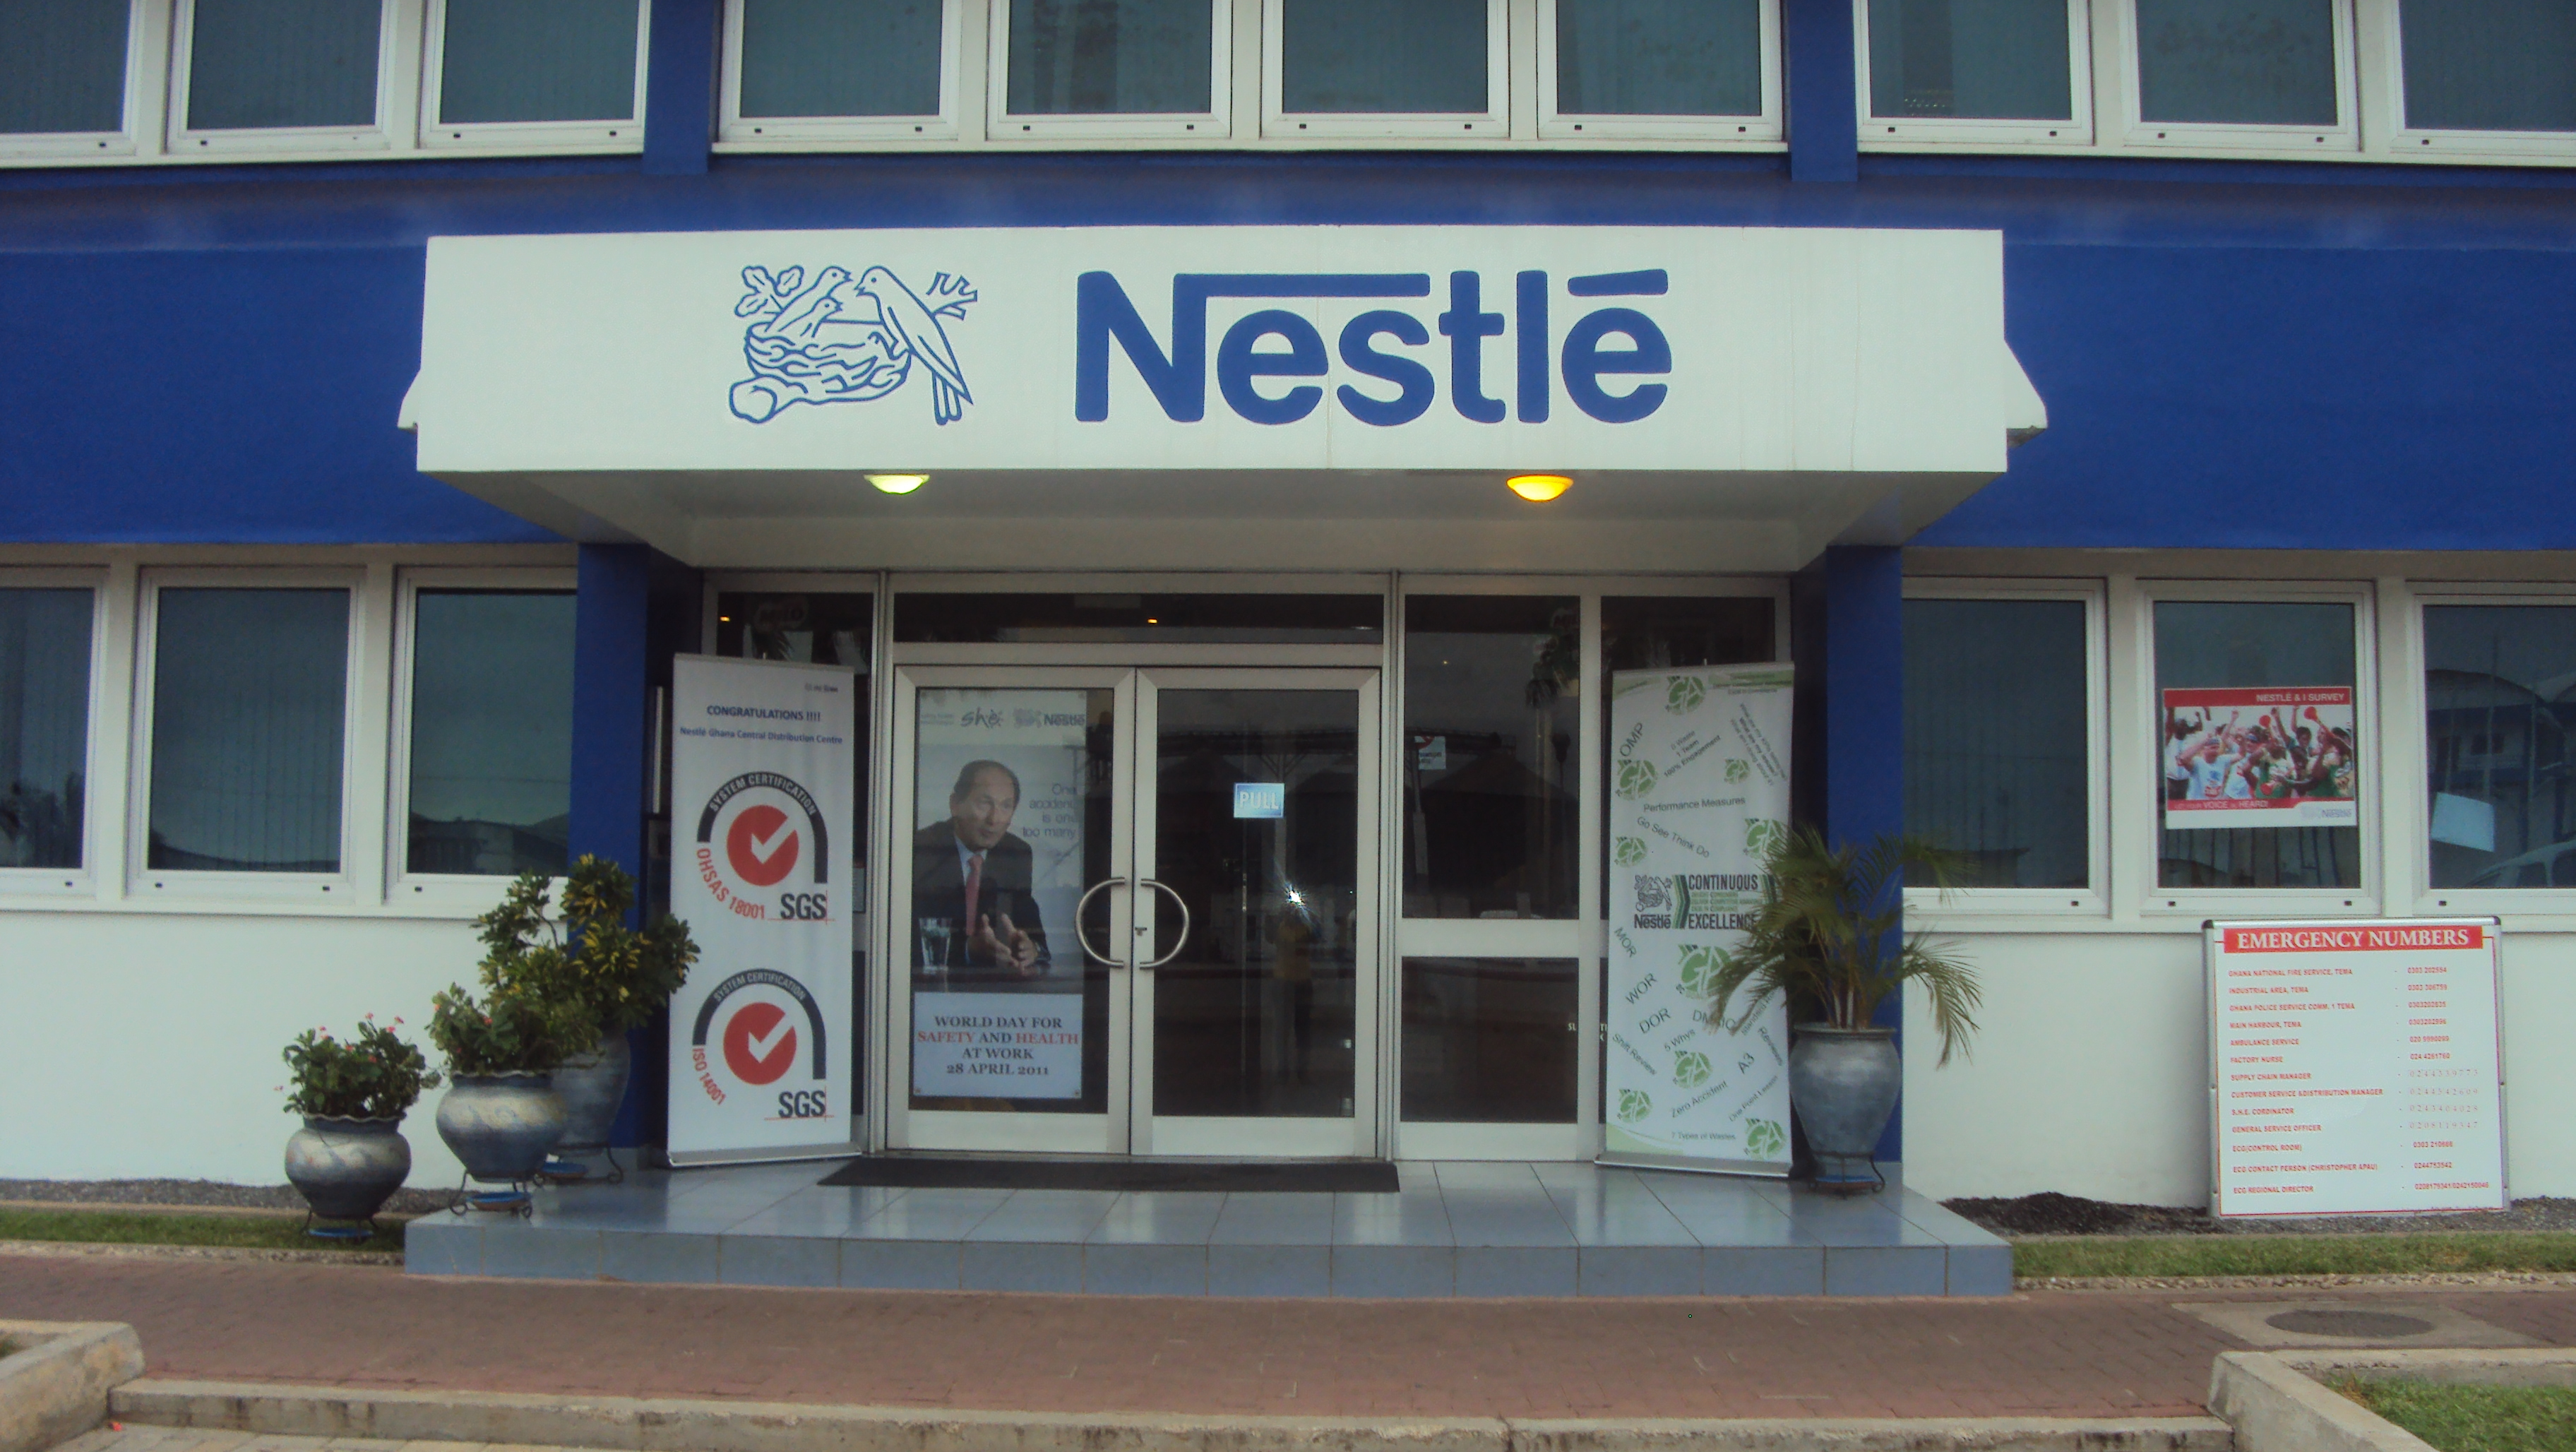 Innovation Company Company Contact Email Asia Co Ltd Mail: Africa Offers Nestle A Reality Check